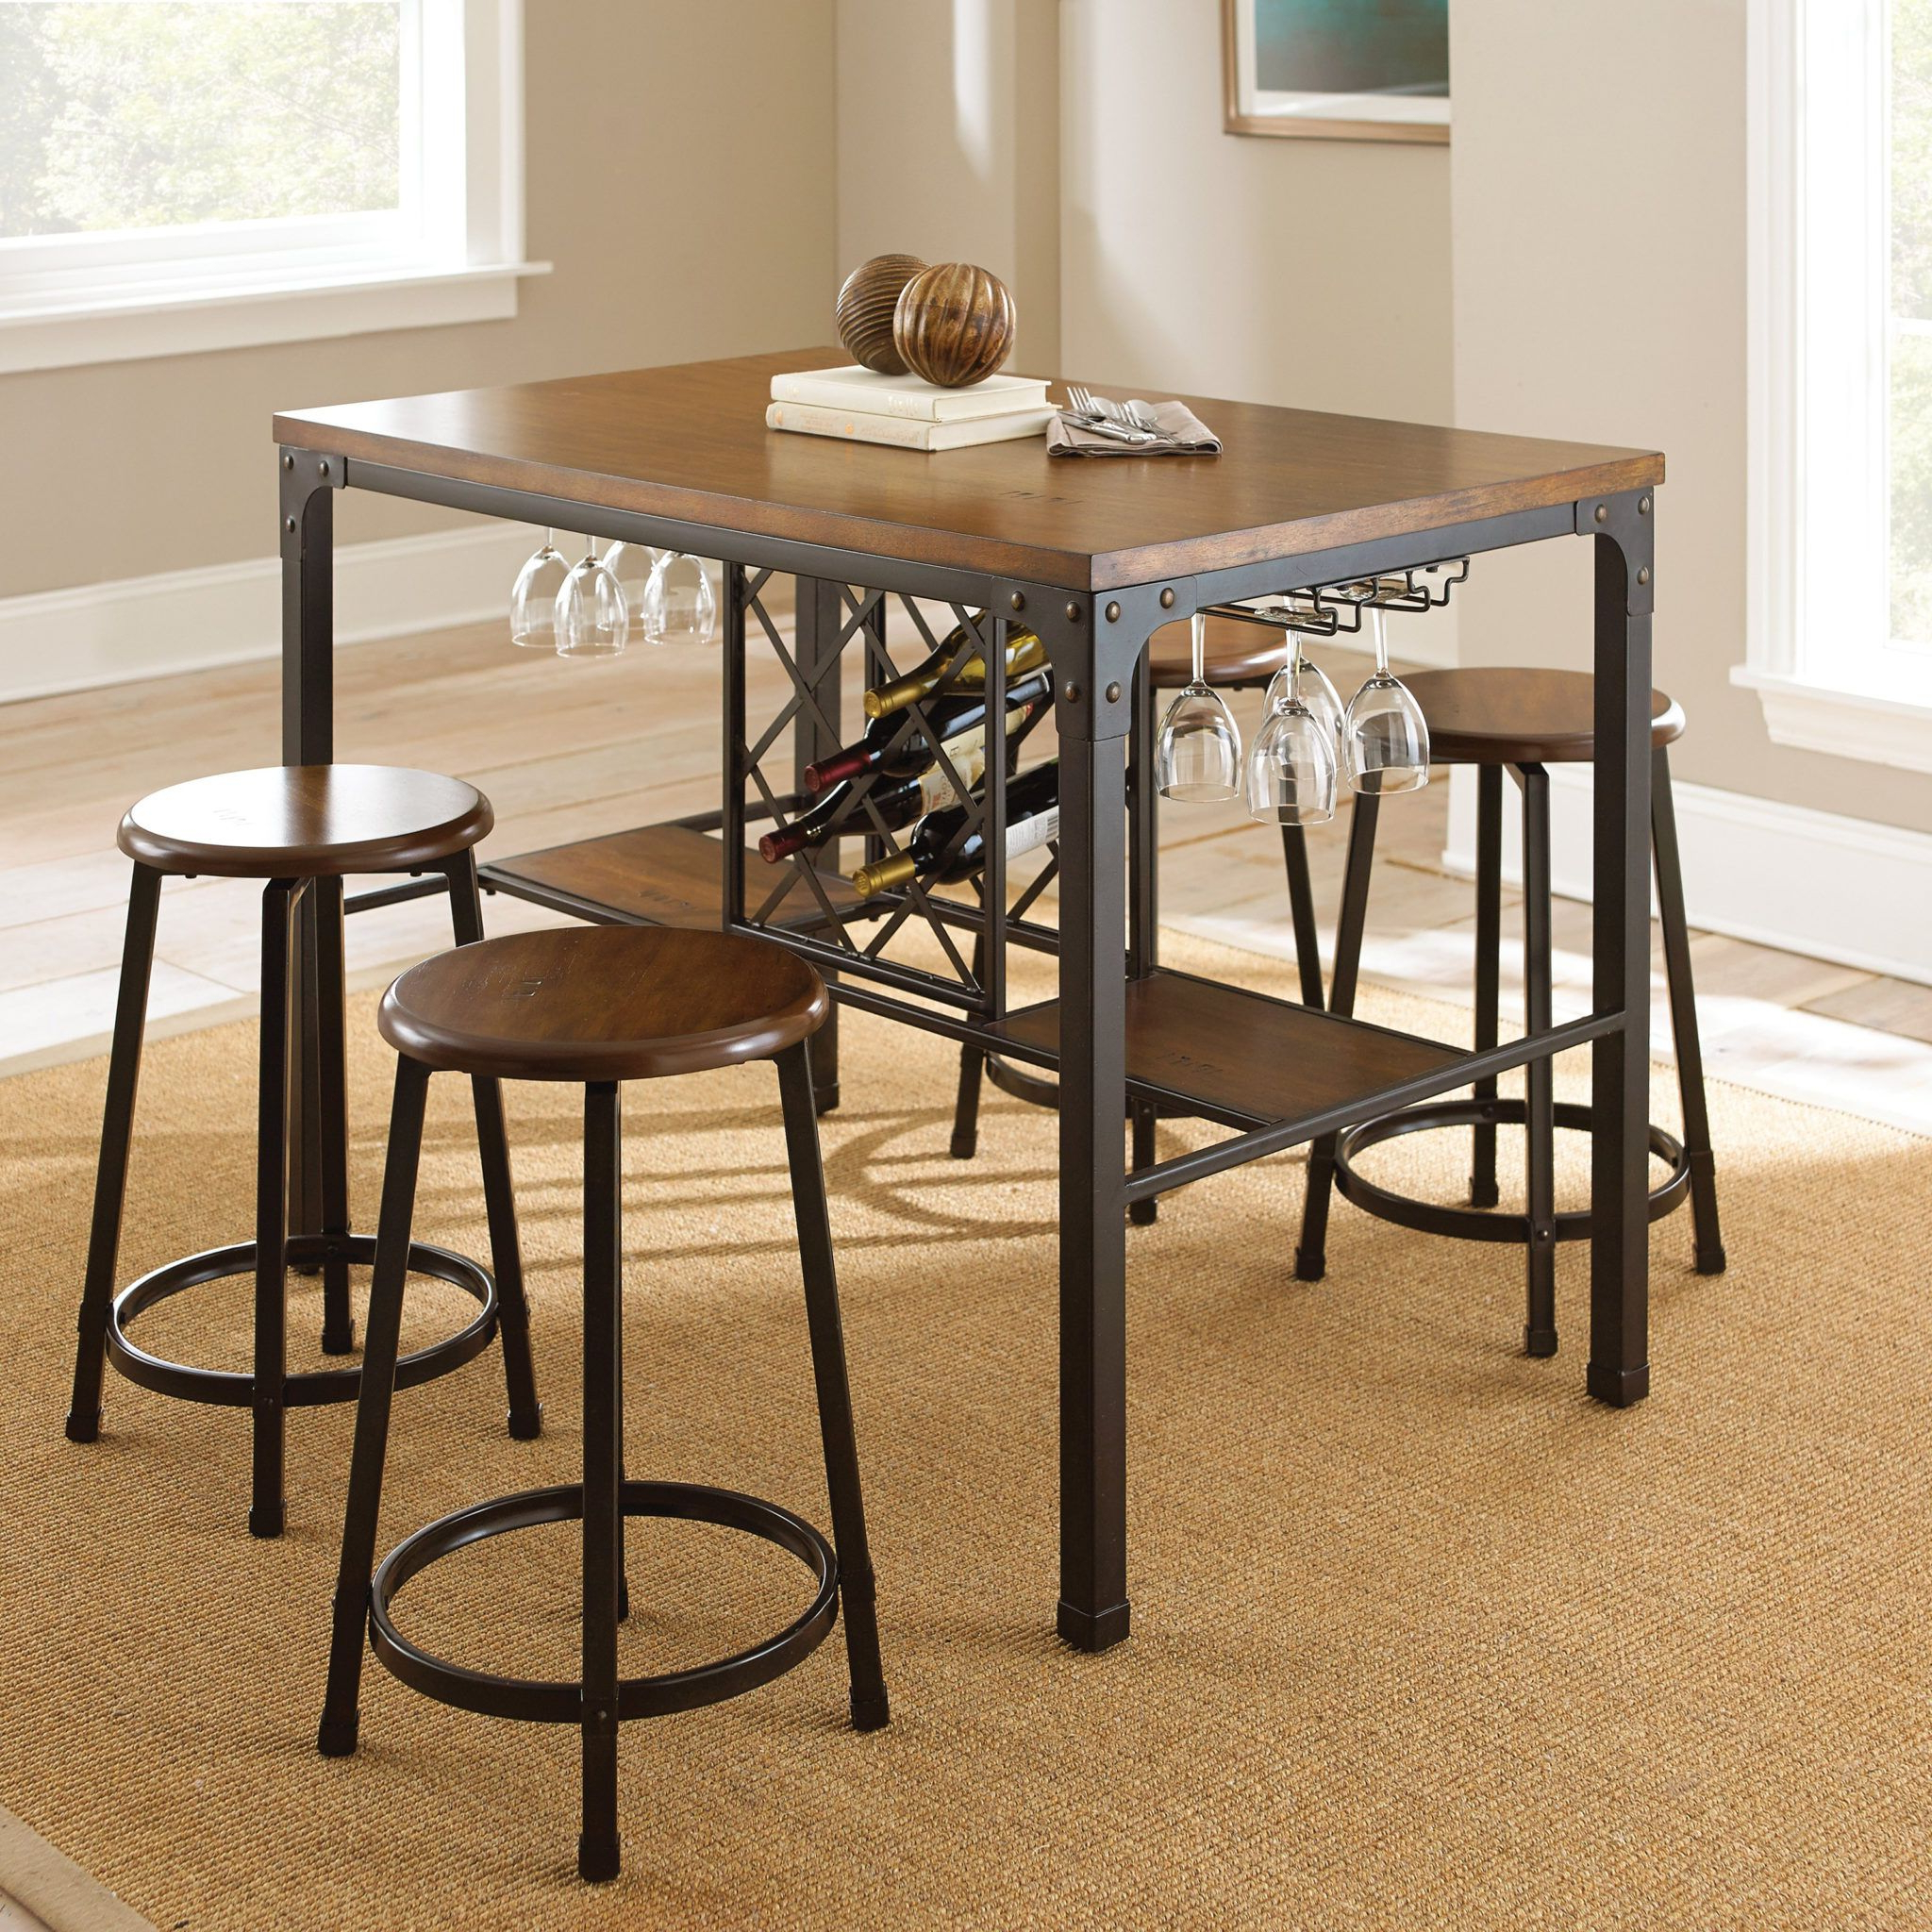 Creative Kitchen Table With Wine Rack Underneath (View 12 of 25)